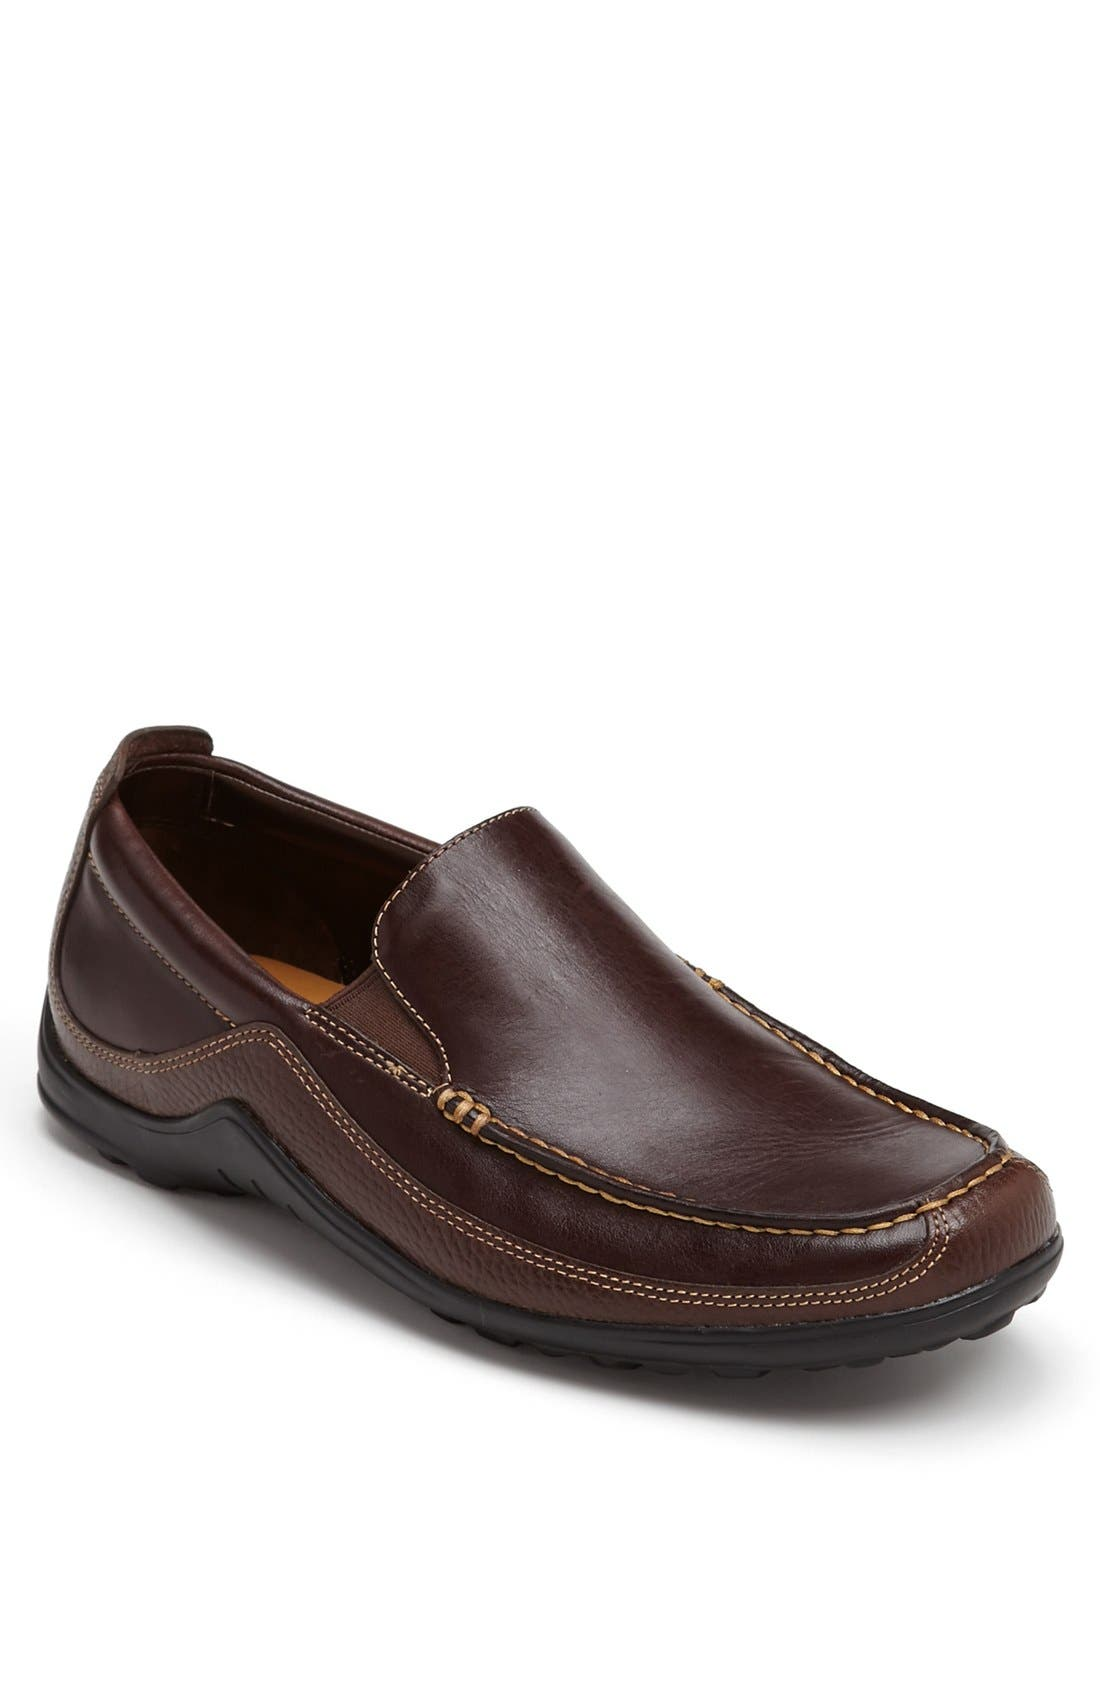 Alternate Image 1 Selected - Cole Haan 'Tucker Venetian' Loafer